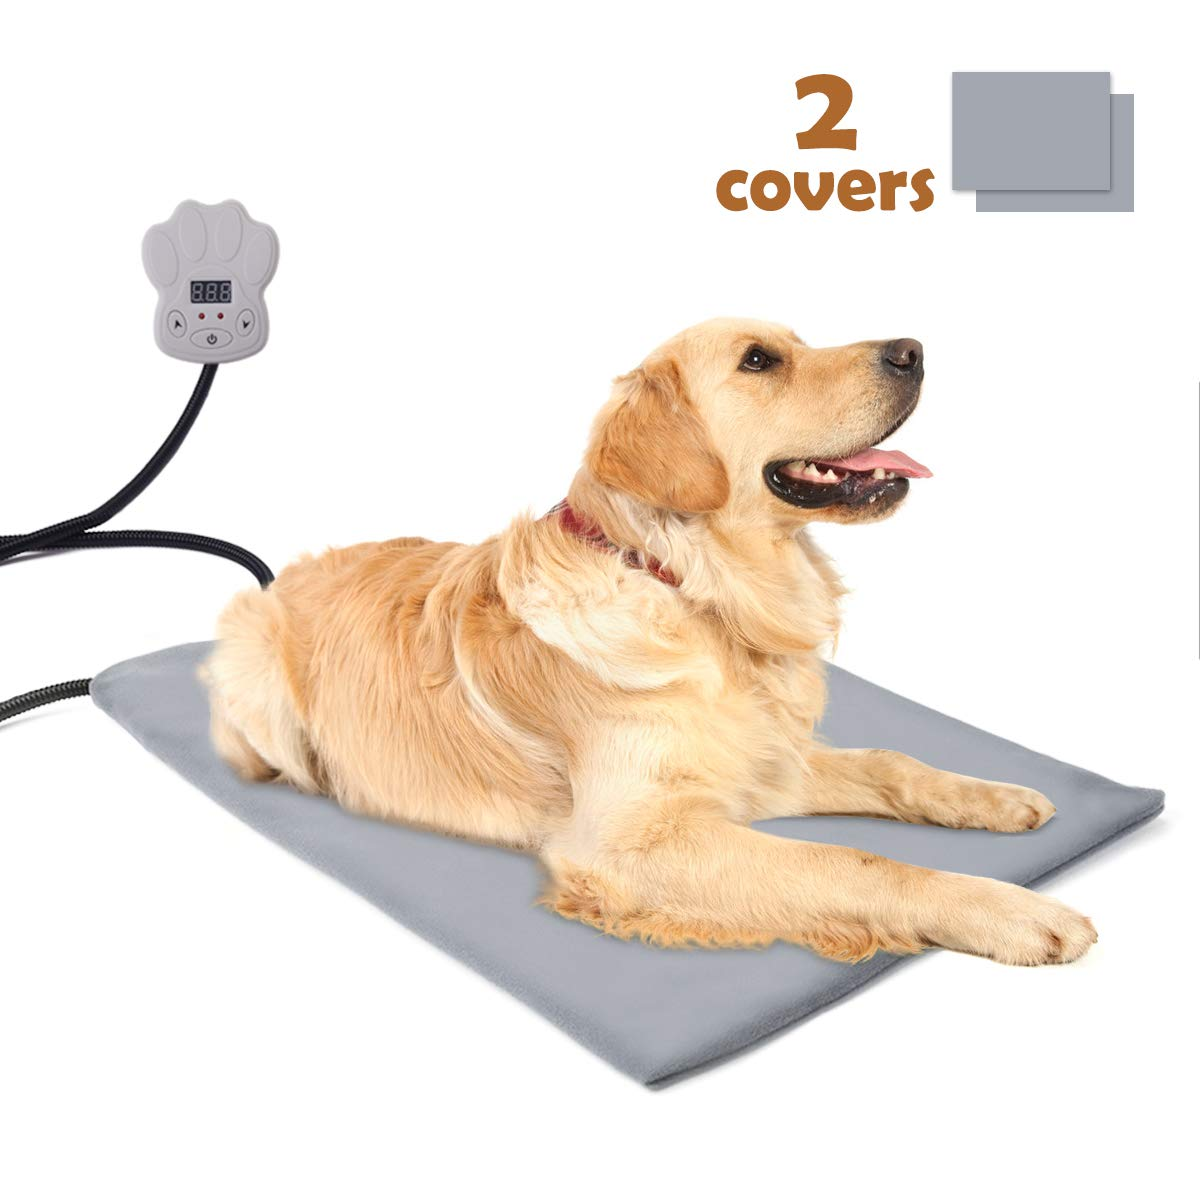 "Sotical Pet Heating Pad, Electric Heating Pad for Cats and Dogs Waterproof Warming Mat with Chew Resistant Cord Soft Remove Cover Overheat Protection (11.8"" 15.7"")"